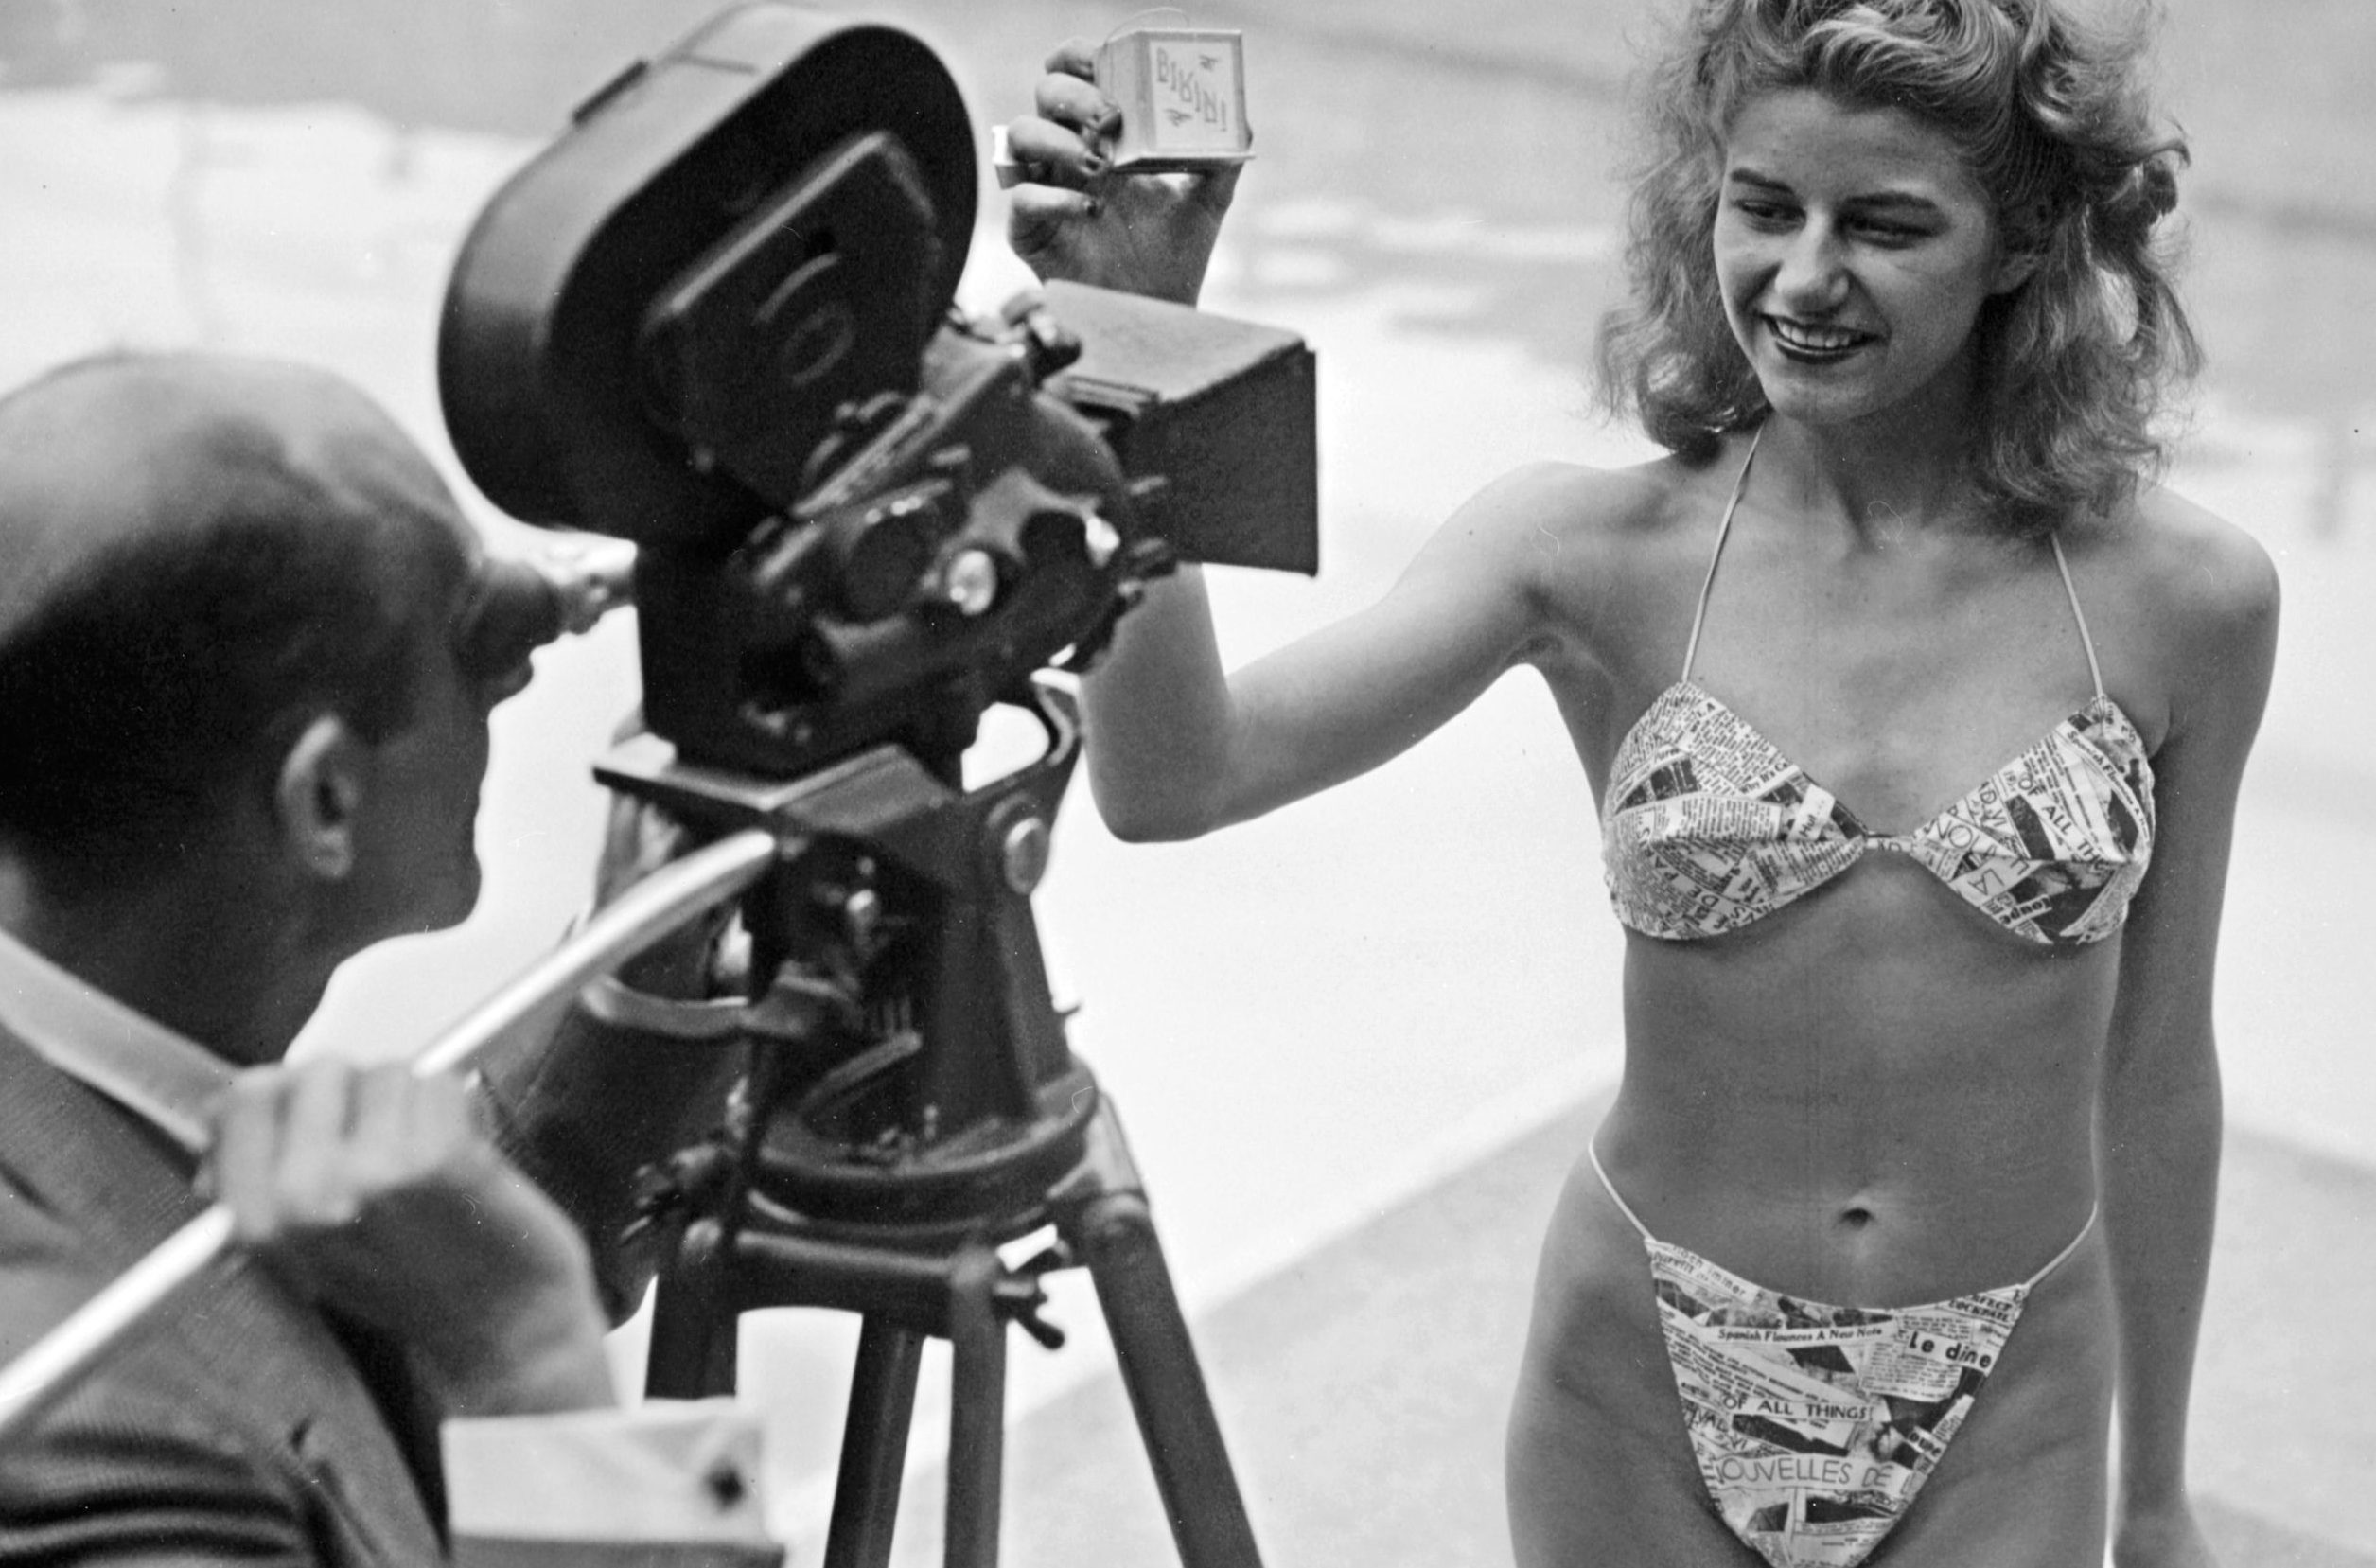 Michelline Bernardini was the first woman to wear the modern style bikini. Pictured here in 1946. Getty.